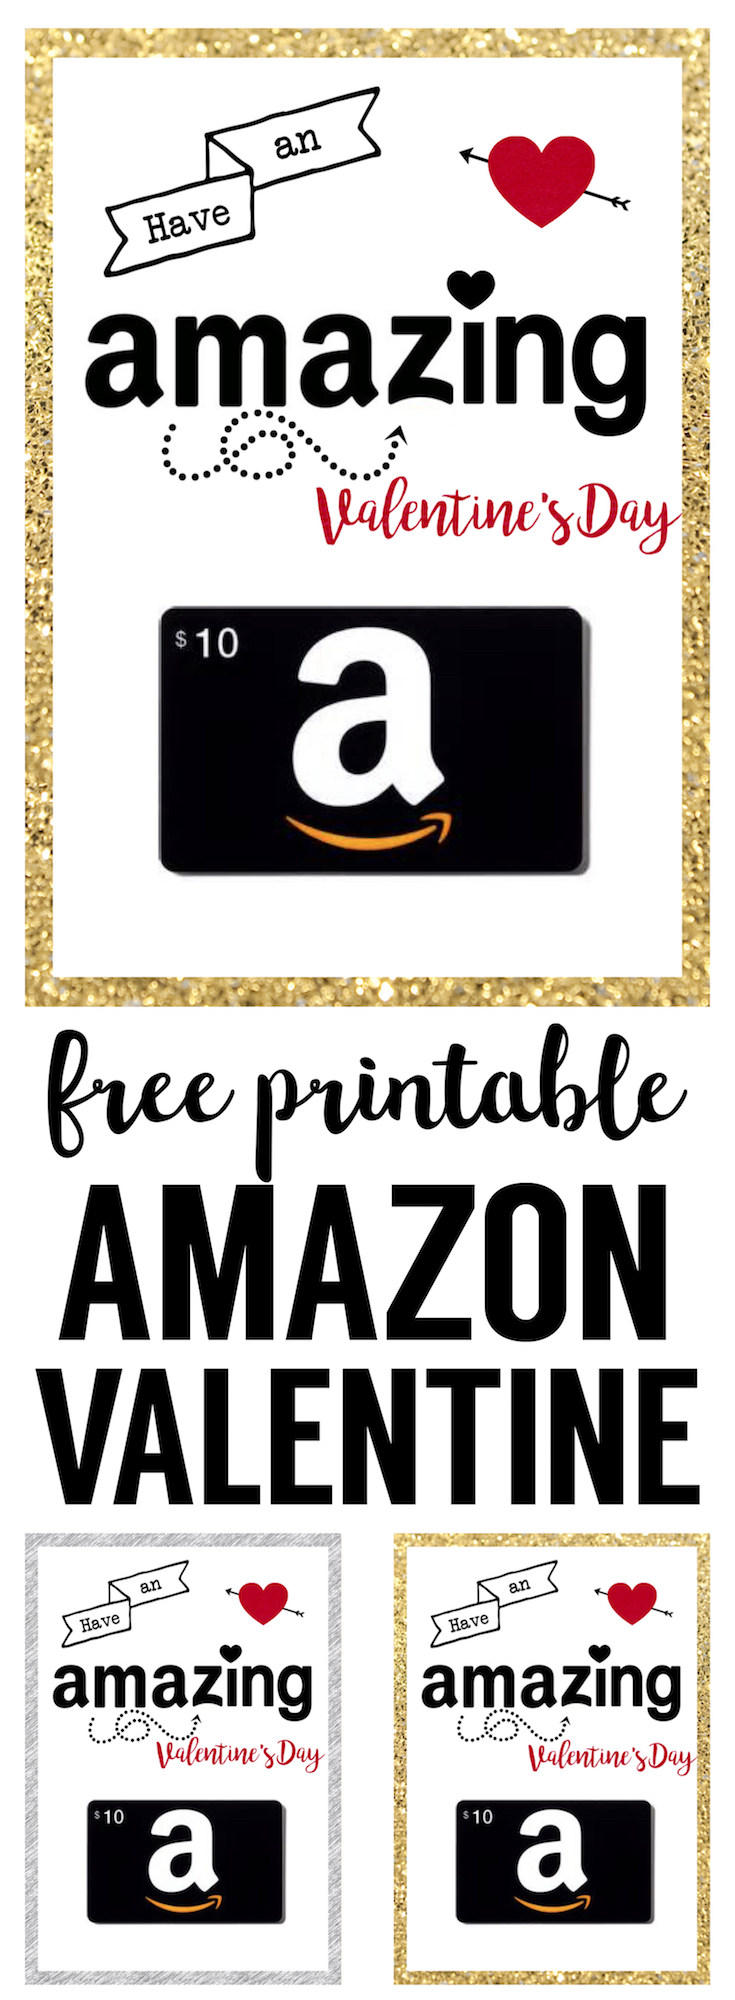 image relating to Amazon Gift Card Printable titled Amazon Valentine Card Printable - Paper Path Structure